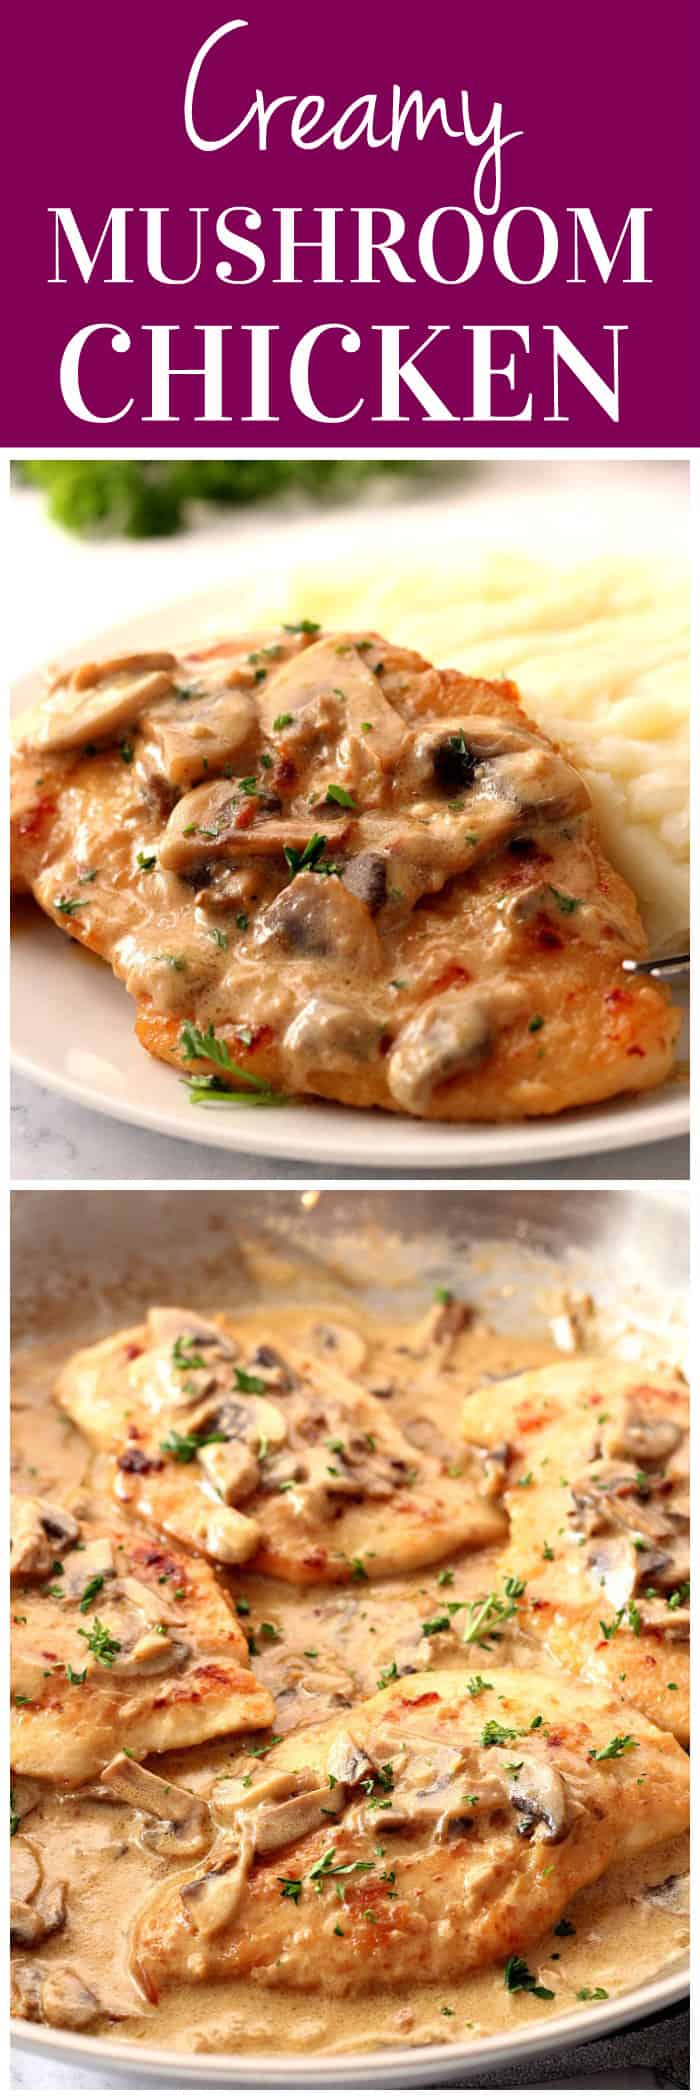 creamy mushroom garlic chicken recipe long1 Creamy Mushroom Garlic Chicken Recipe